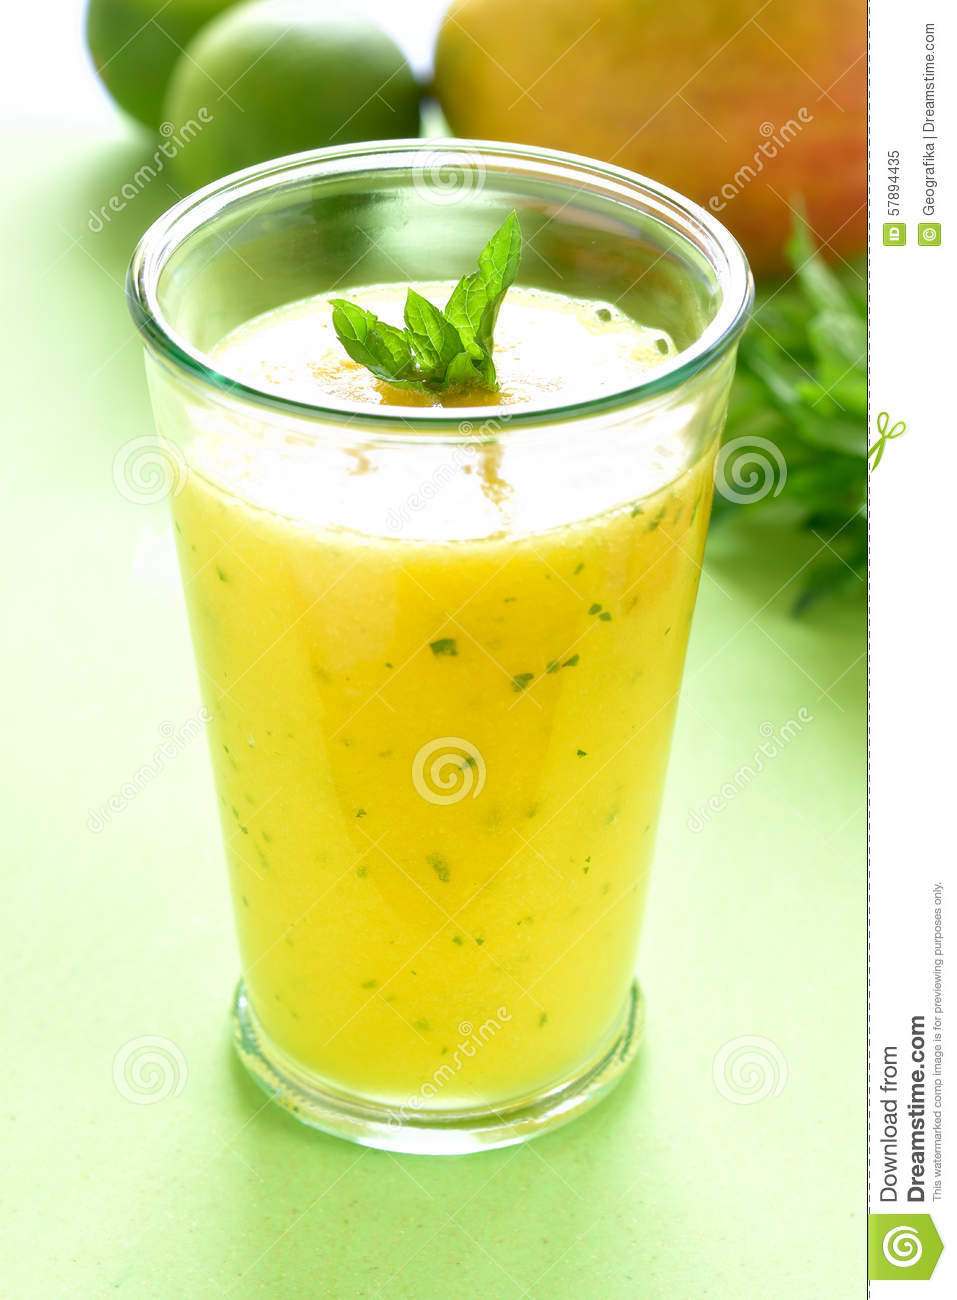 ... table, Yellow Tropical Smoothie made with mango, mint and lime juice